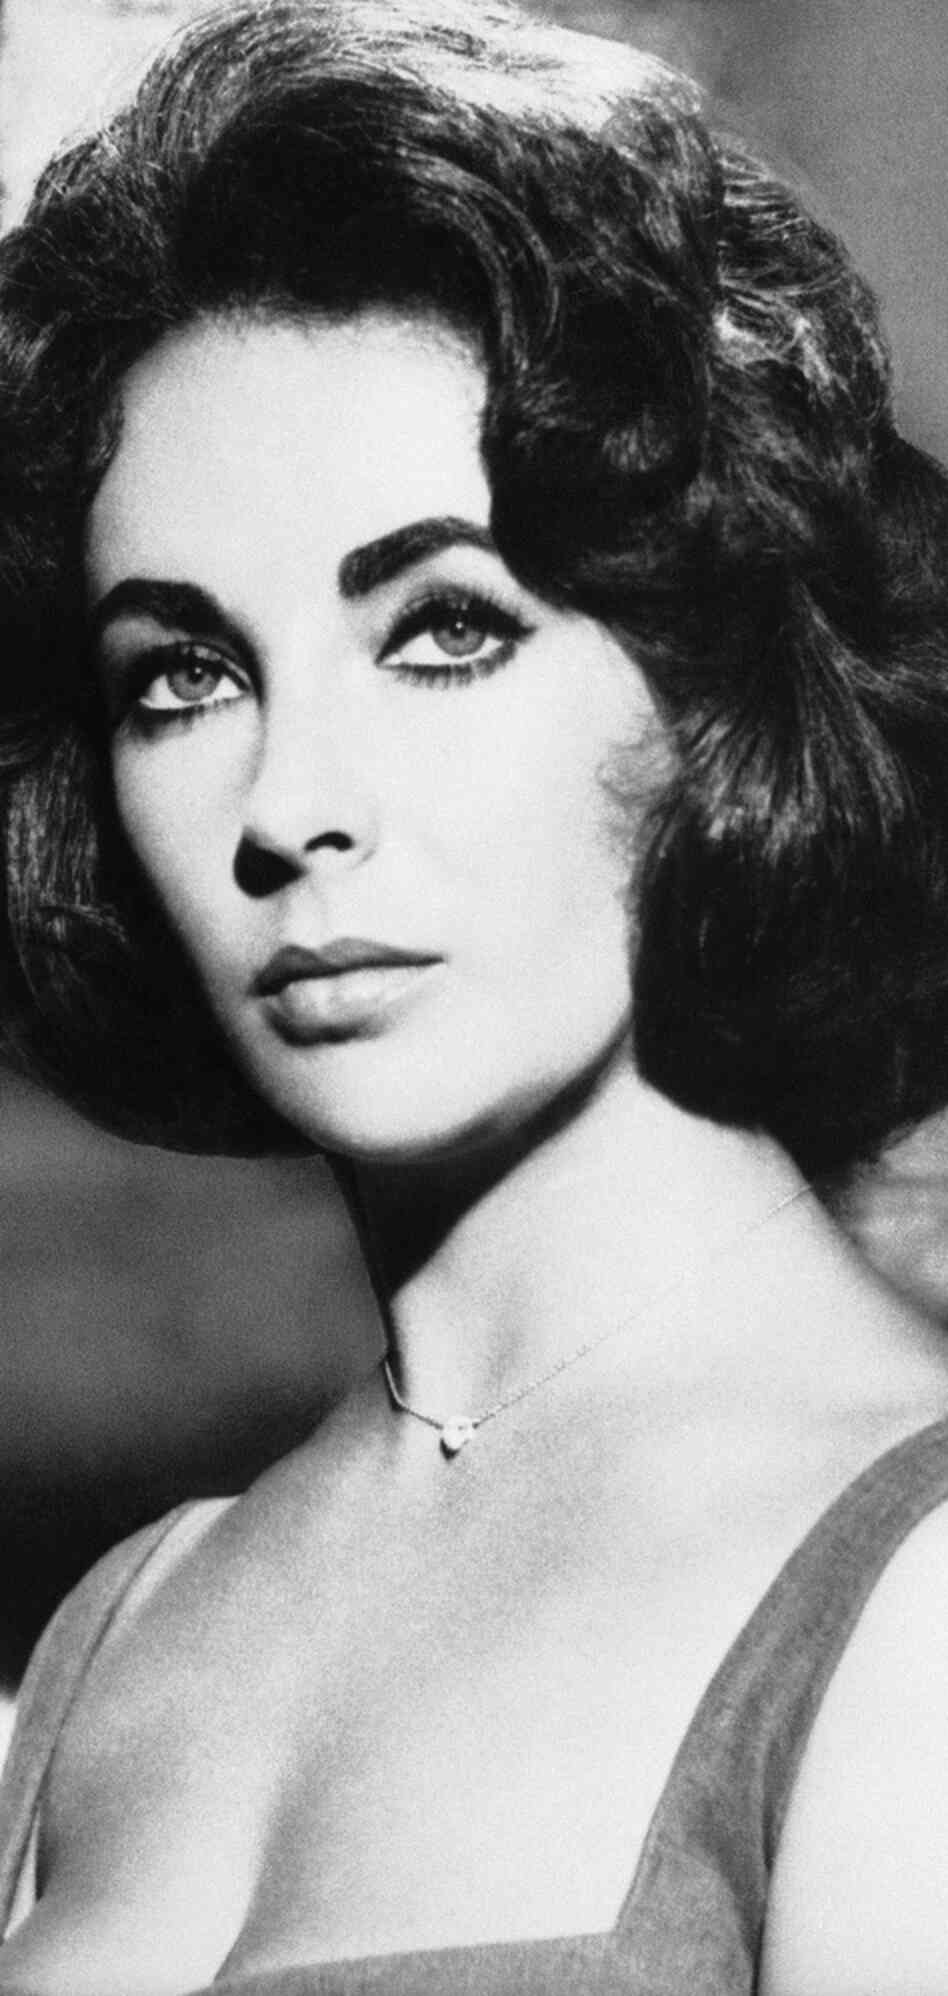 Iconic screen legend Elizabeth Taylor, pictured above in 1961, died on Wednesday. She was 79.